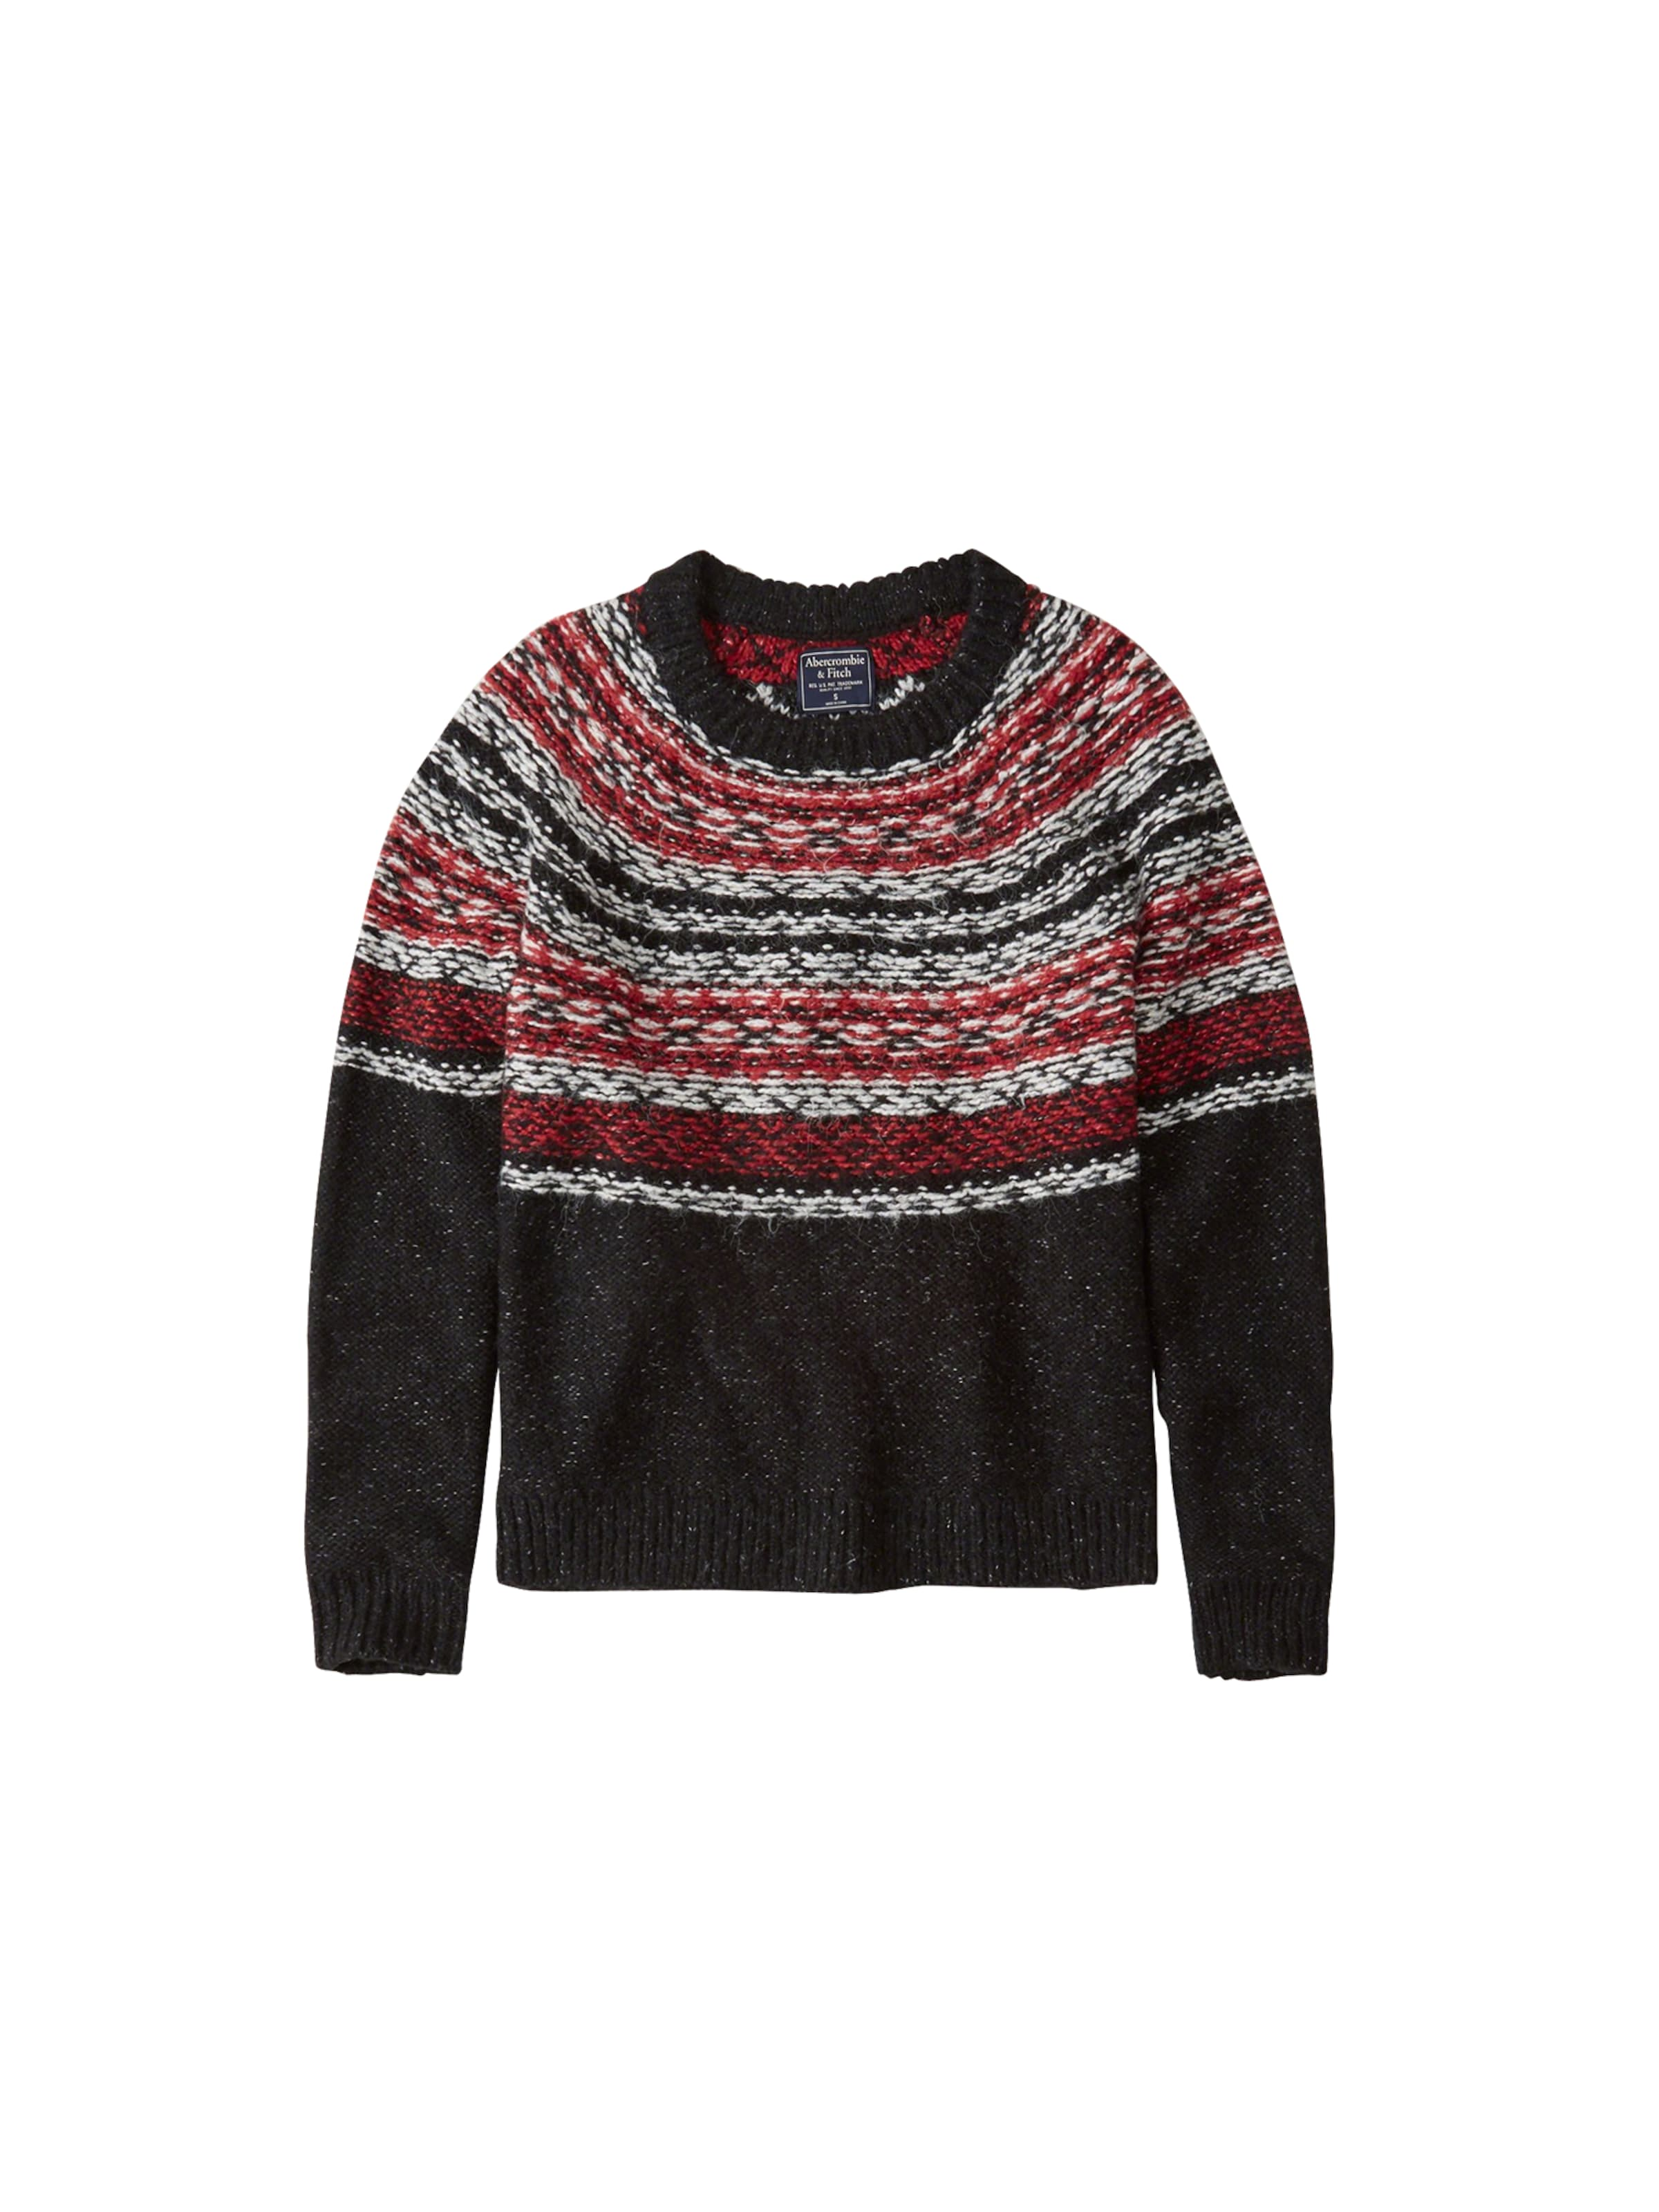 'snowflake RougeNoir Blanc Crew' Pattern En Abercrombieamp; Fitch Pull over 7Yb6gfy